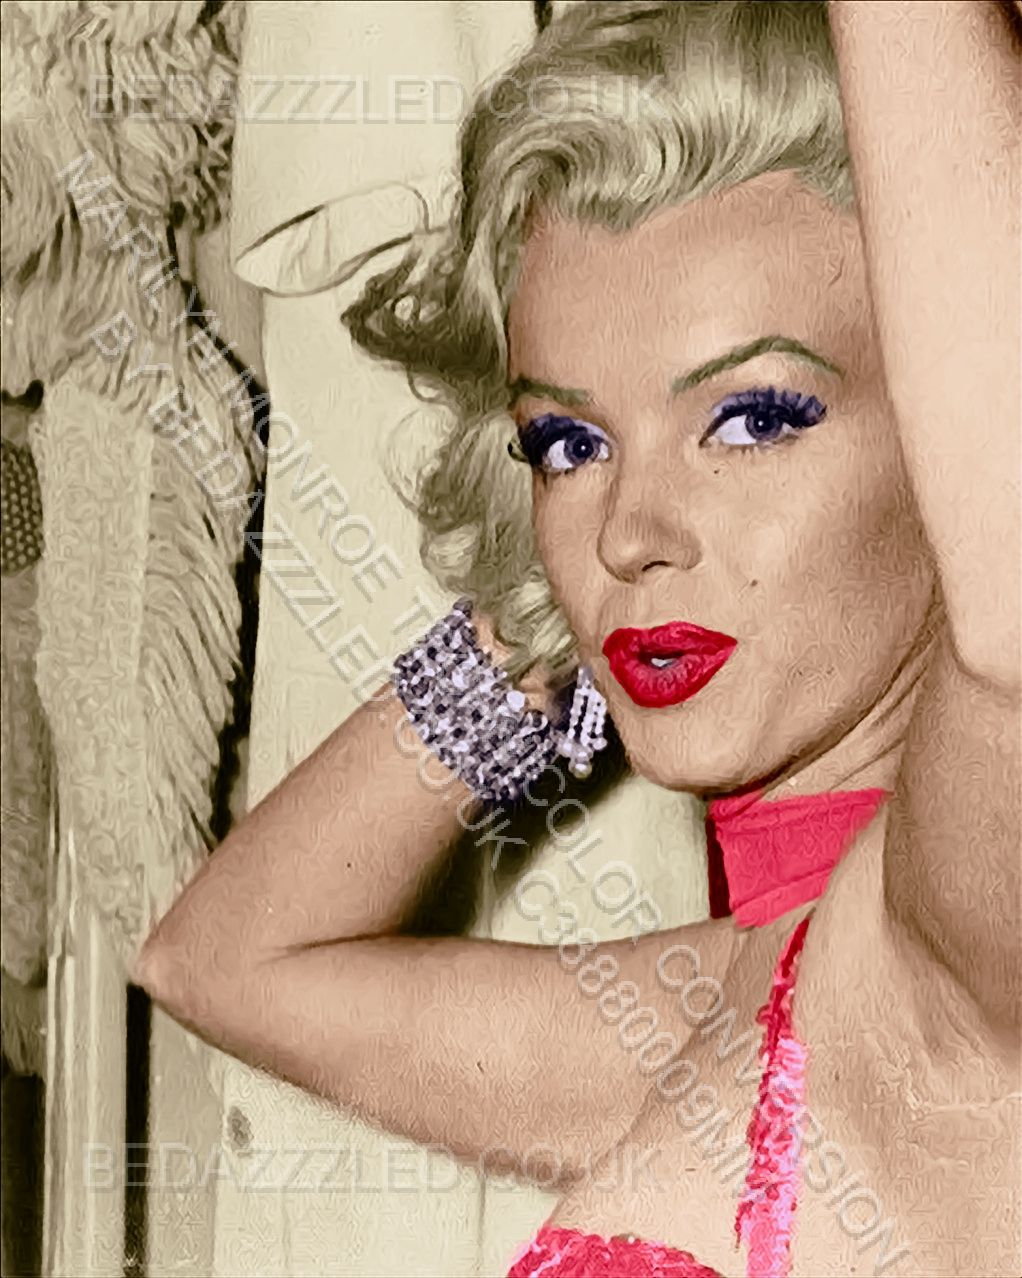 MARILYN MONROE TECHNICOLOR CONVERSION/RESTORATION BY BEDAZZZLED FROM EXTREMELY GRAINY B/W PRINT